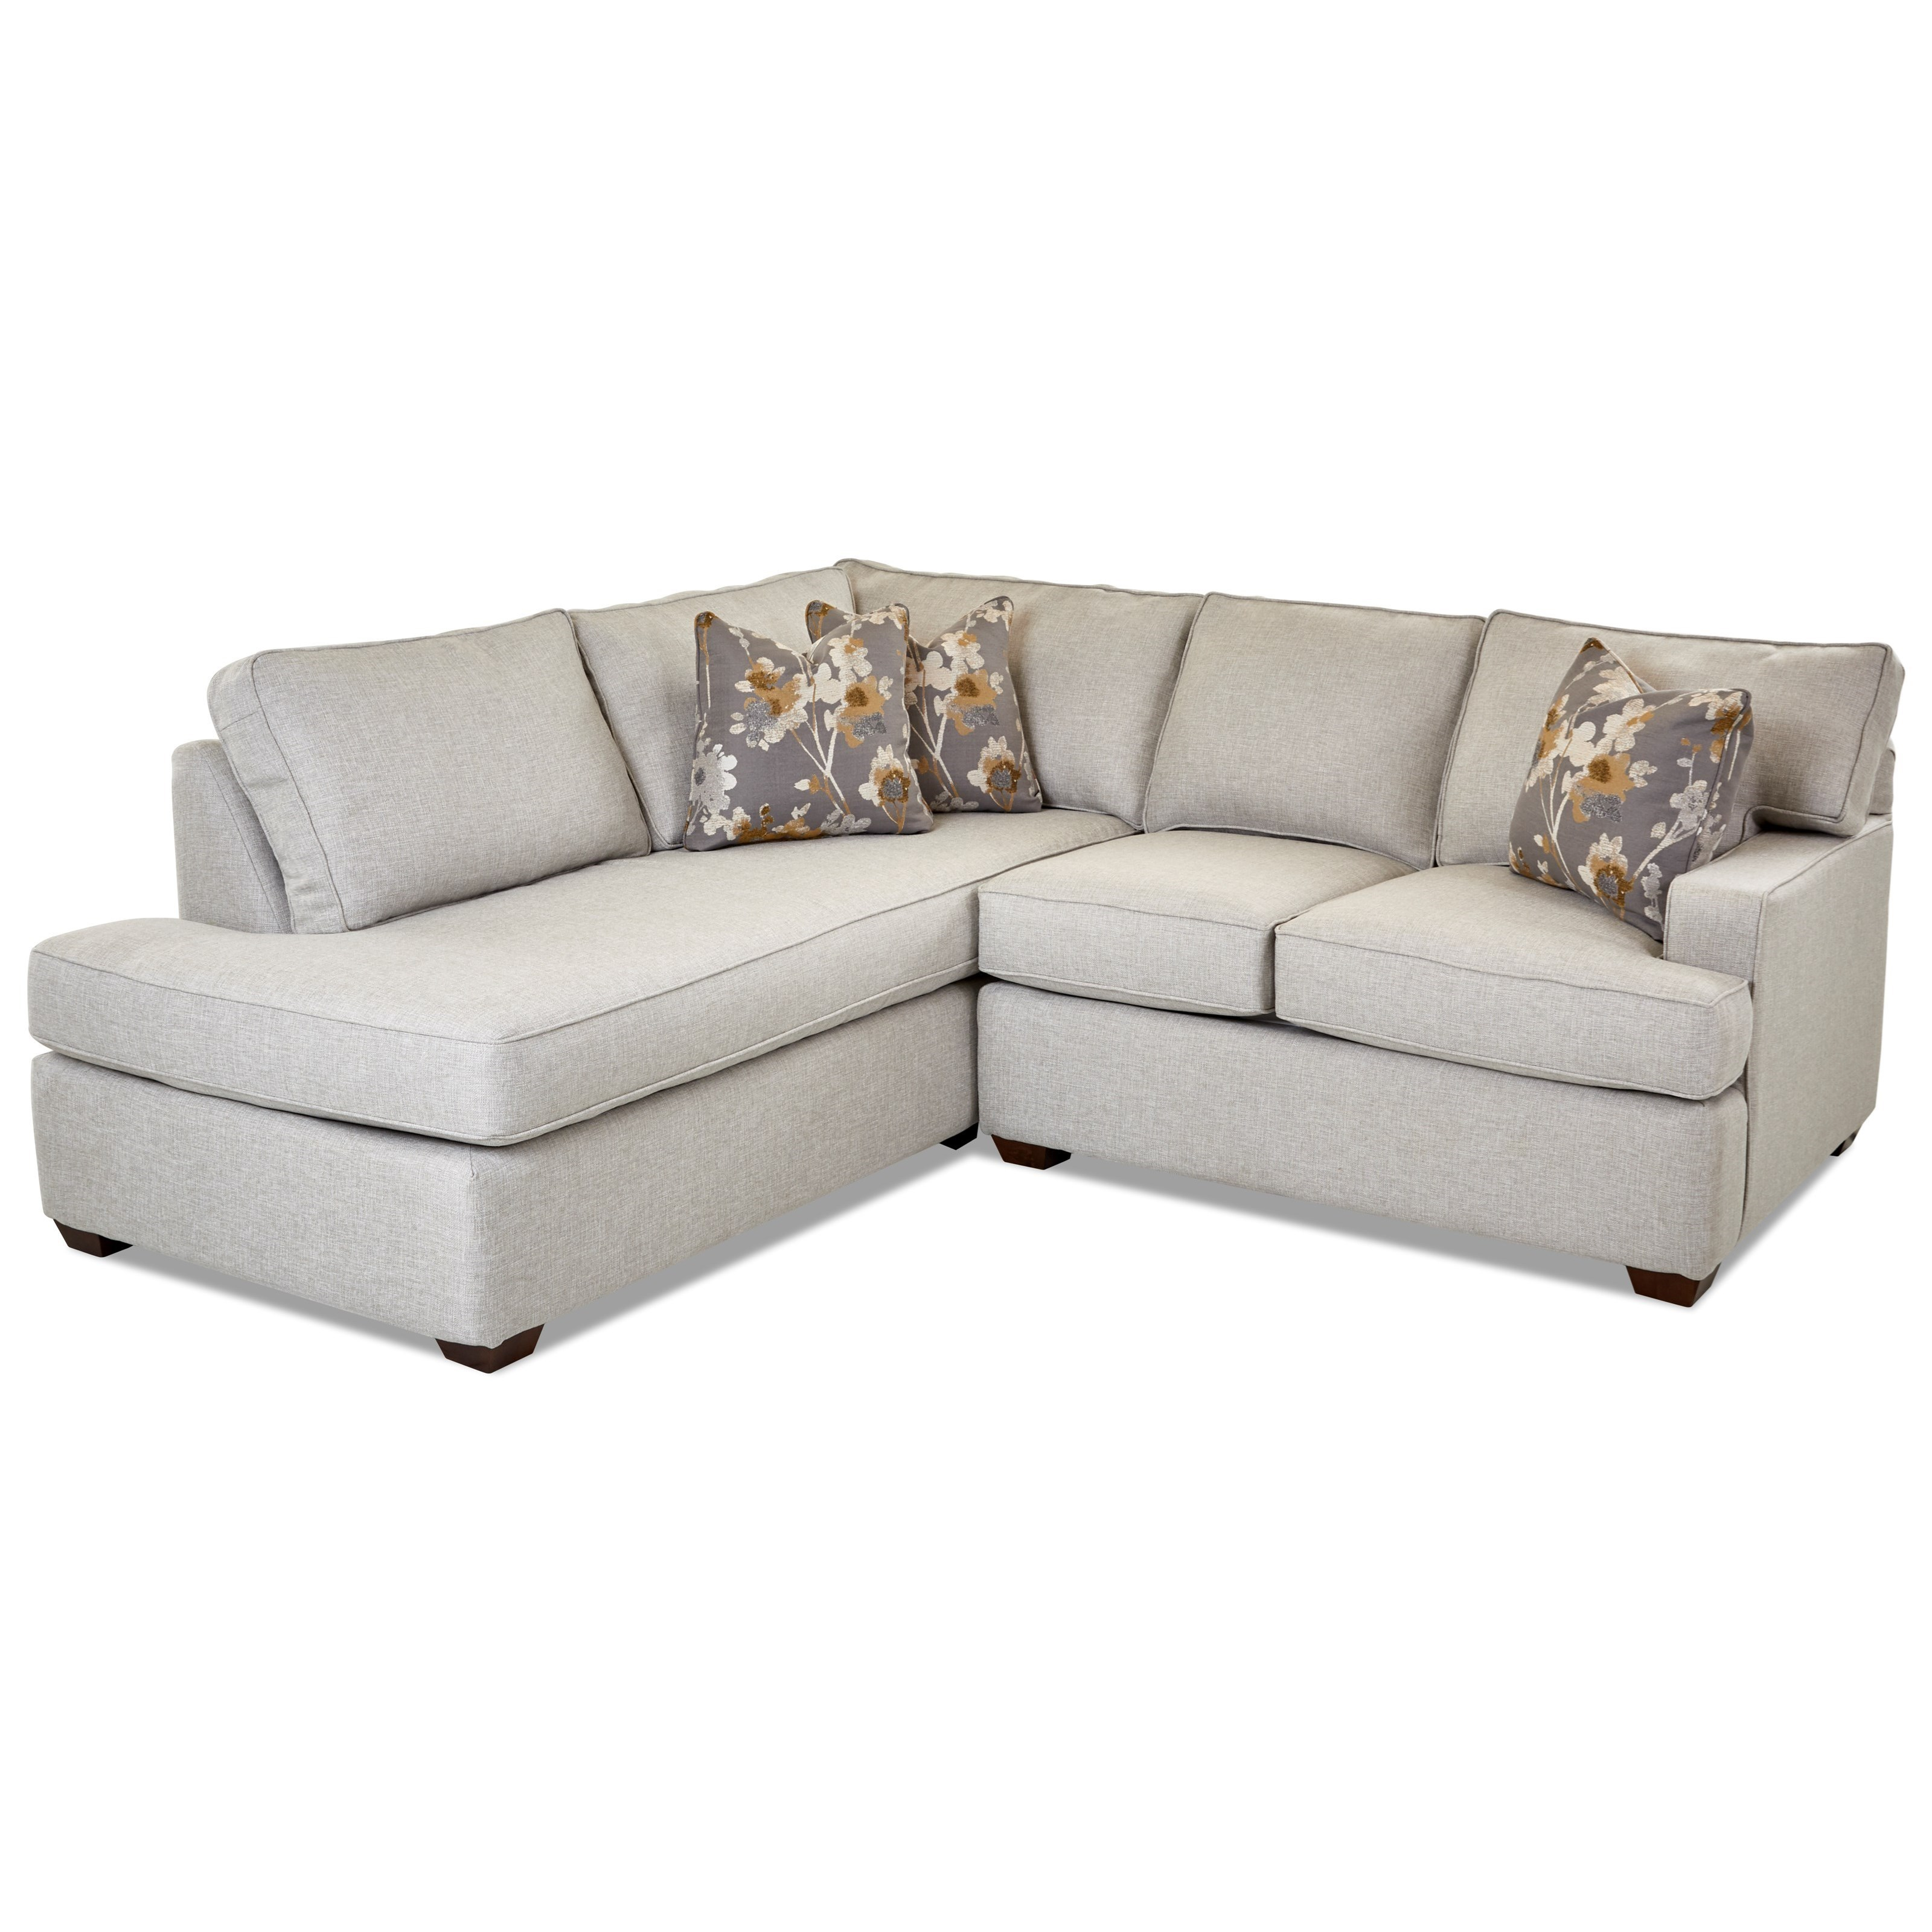 2 piece chaise sofa w laf chaise